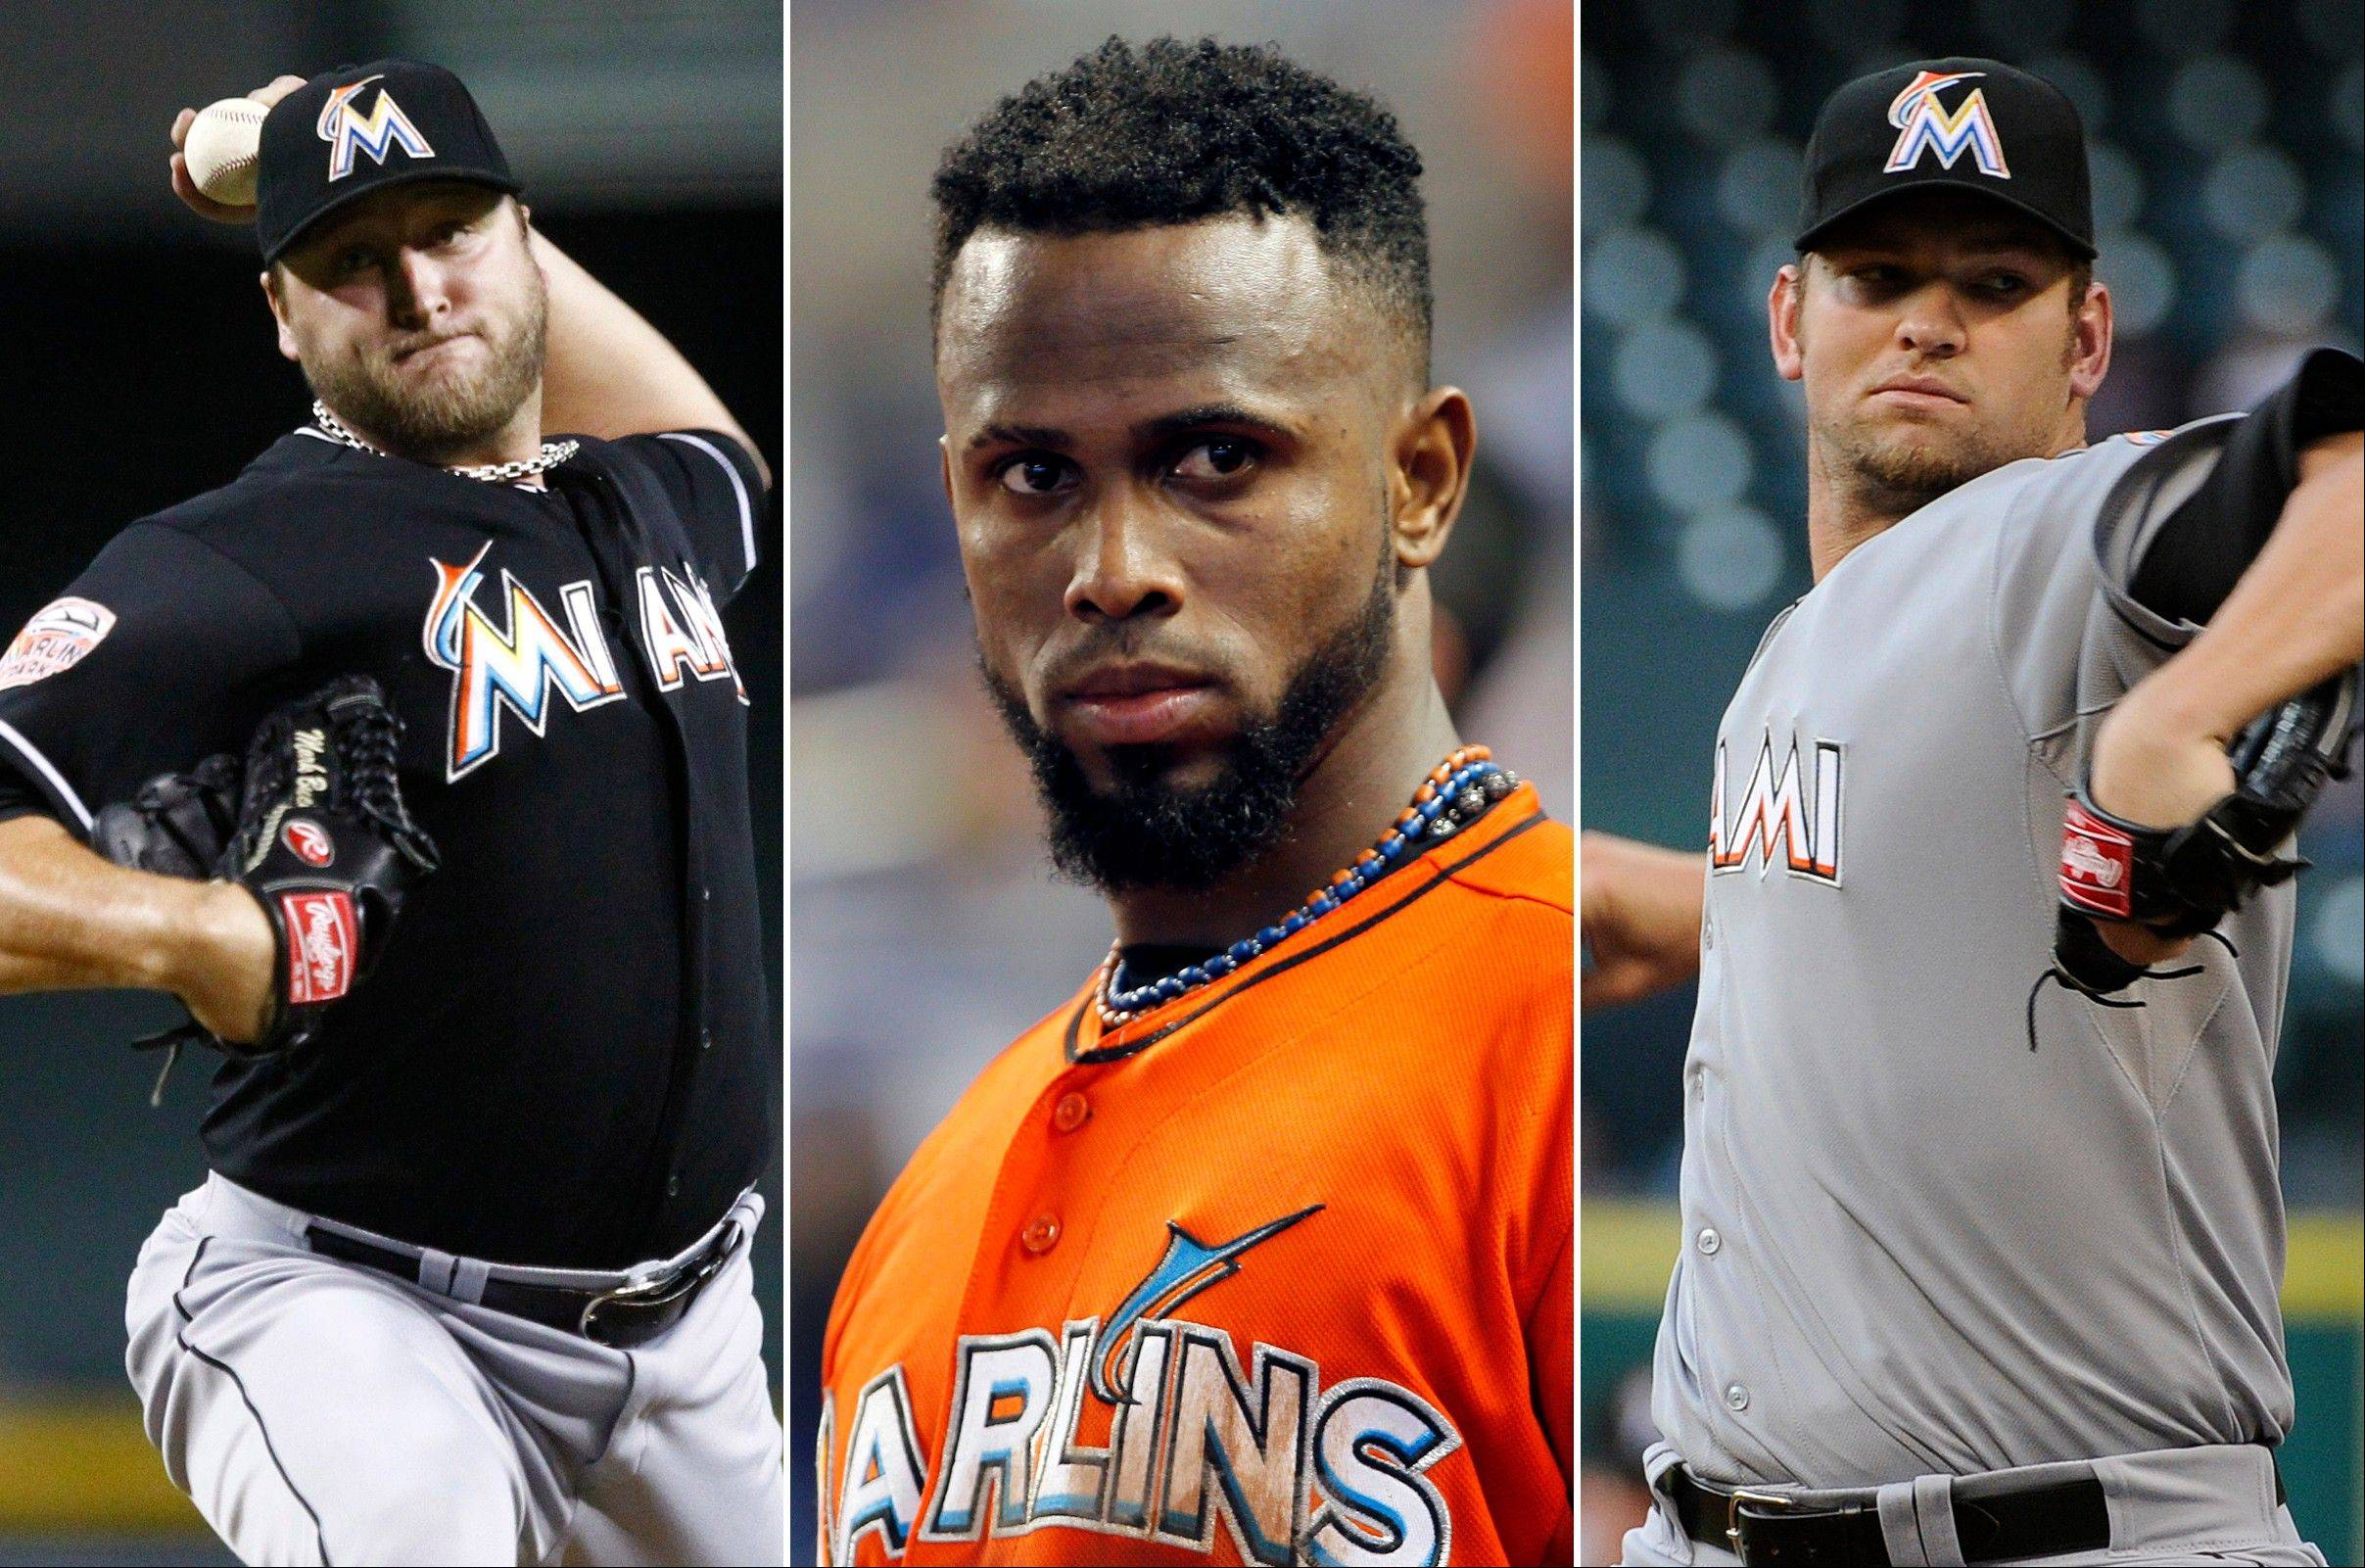 Marlins' latest payroll purge prompts fan backlash